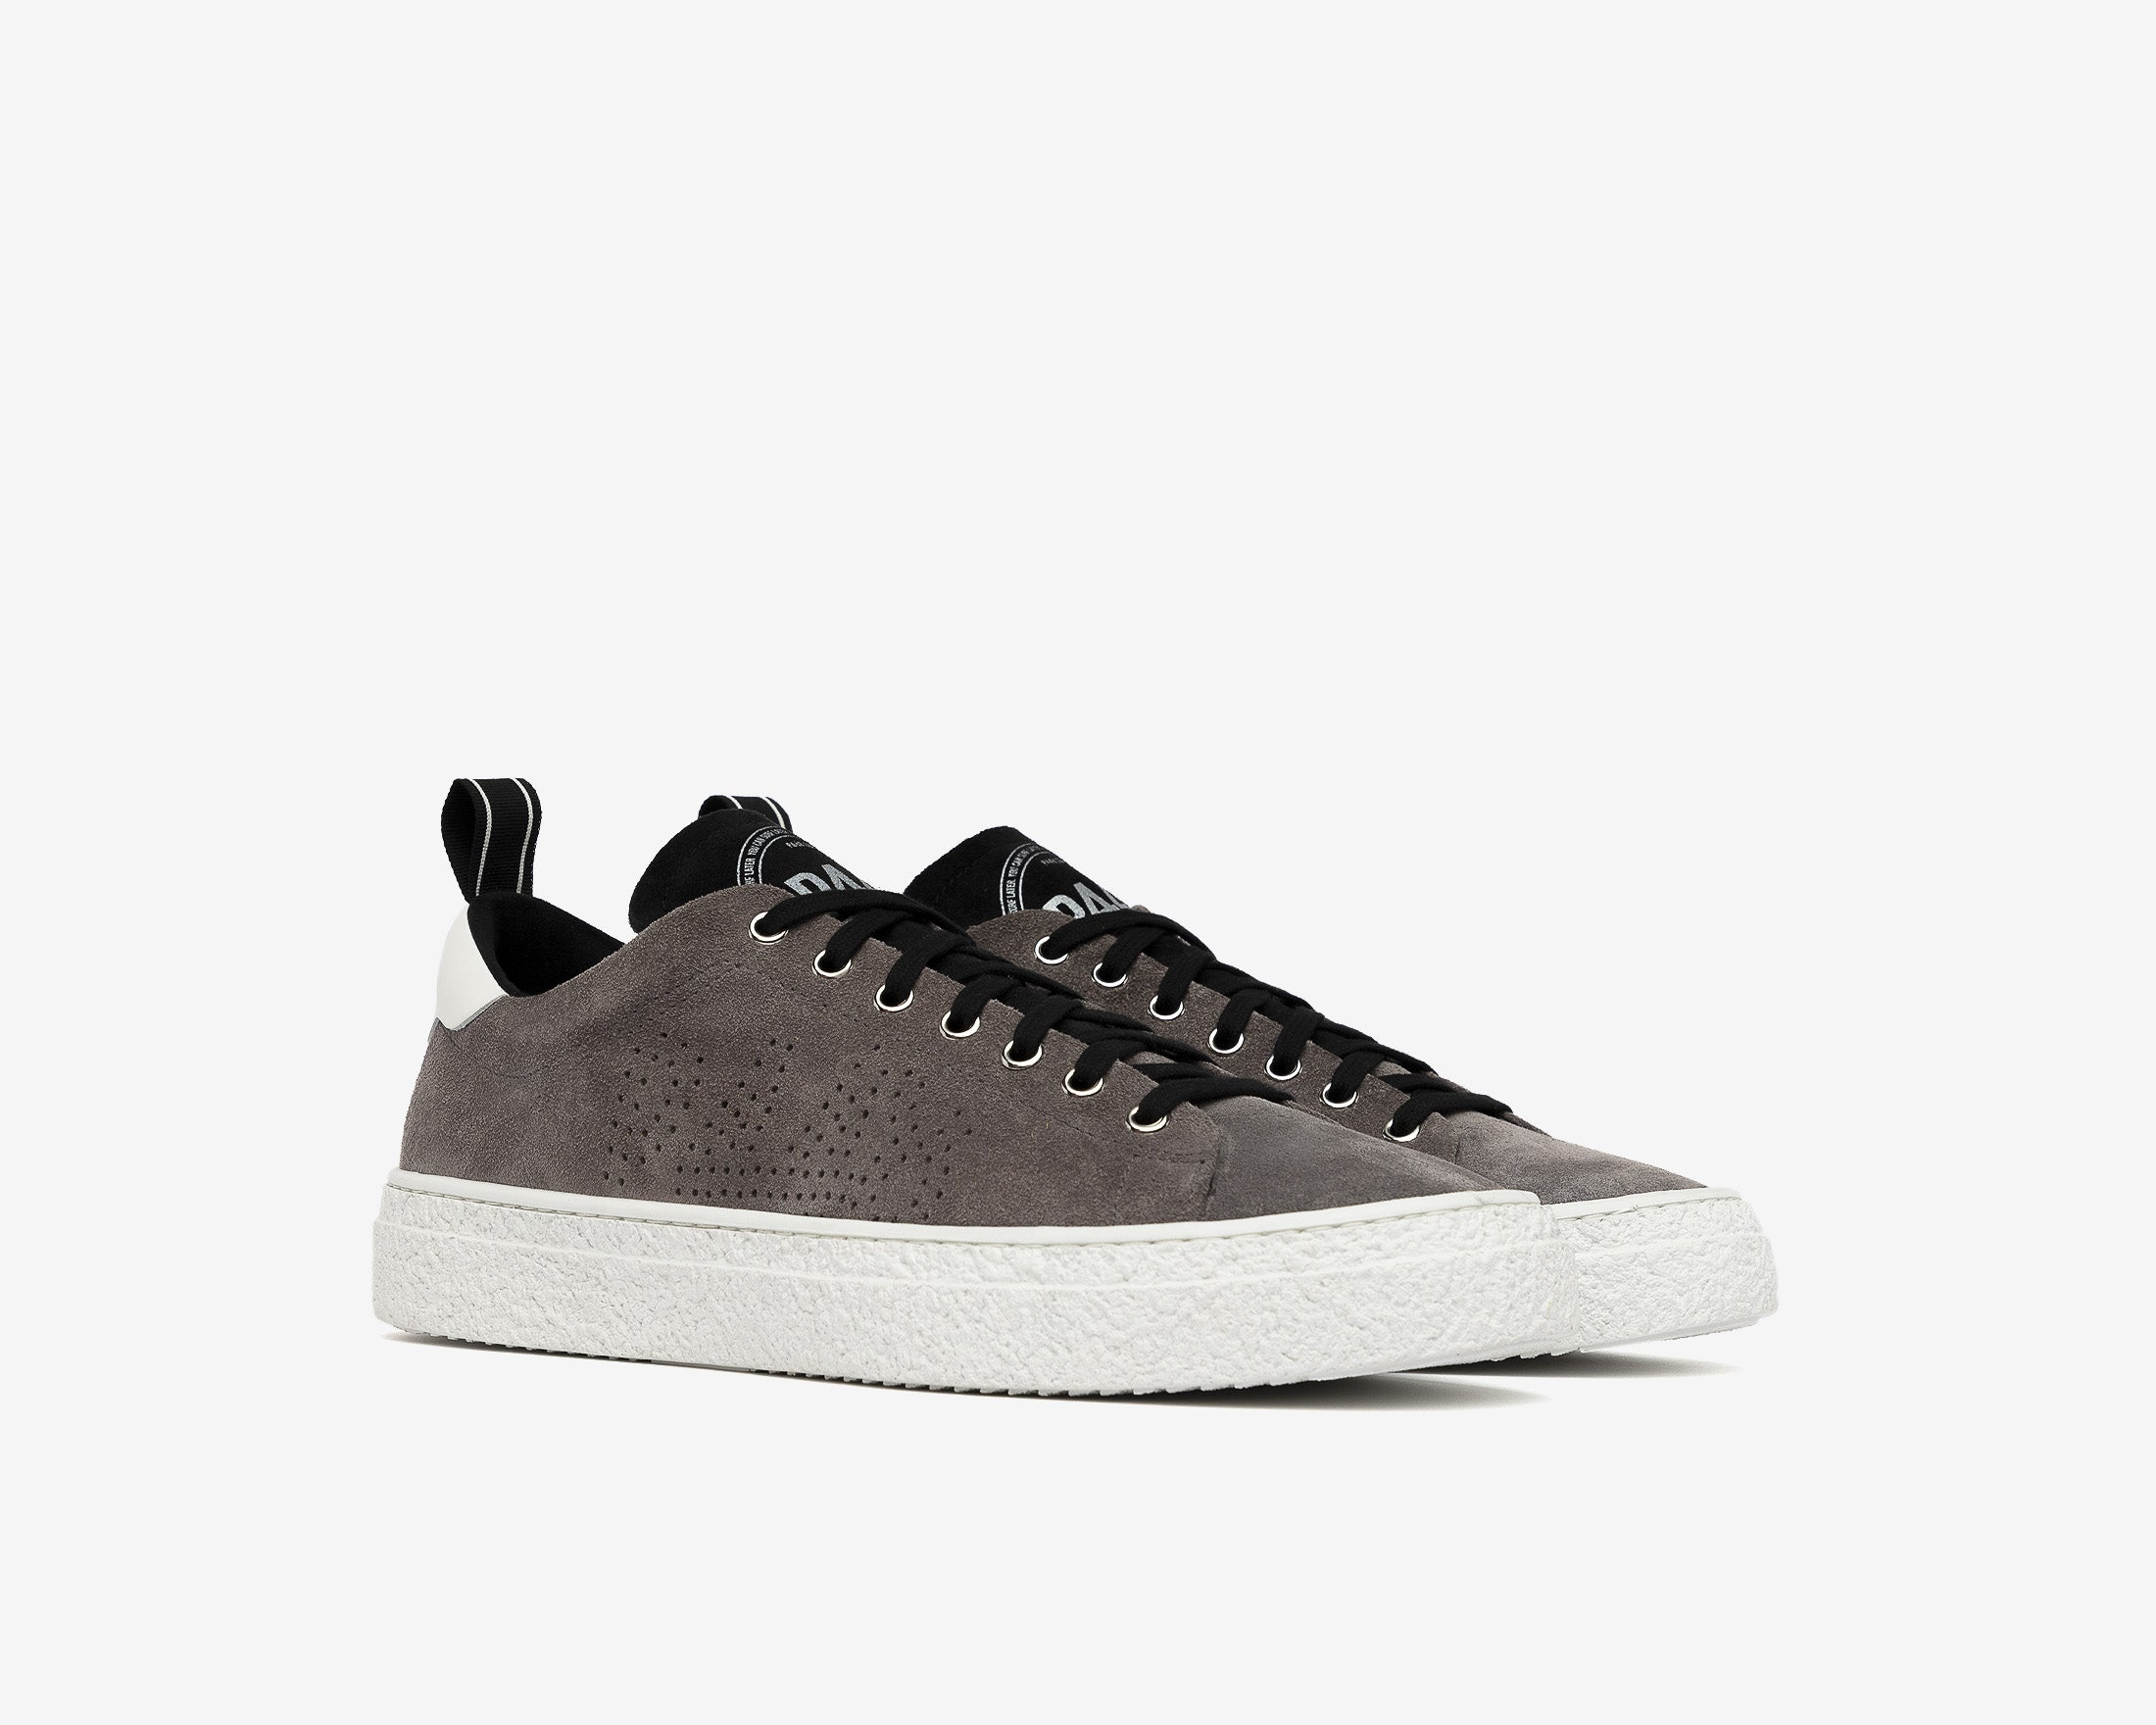 Shane Slip-on Sneaker in Anthracite Suede - Side